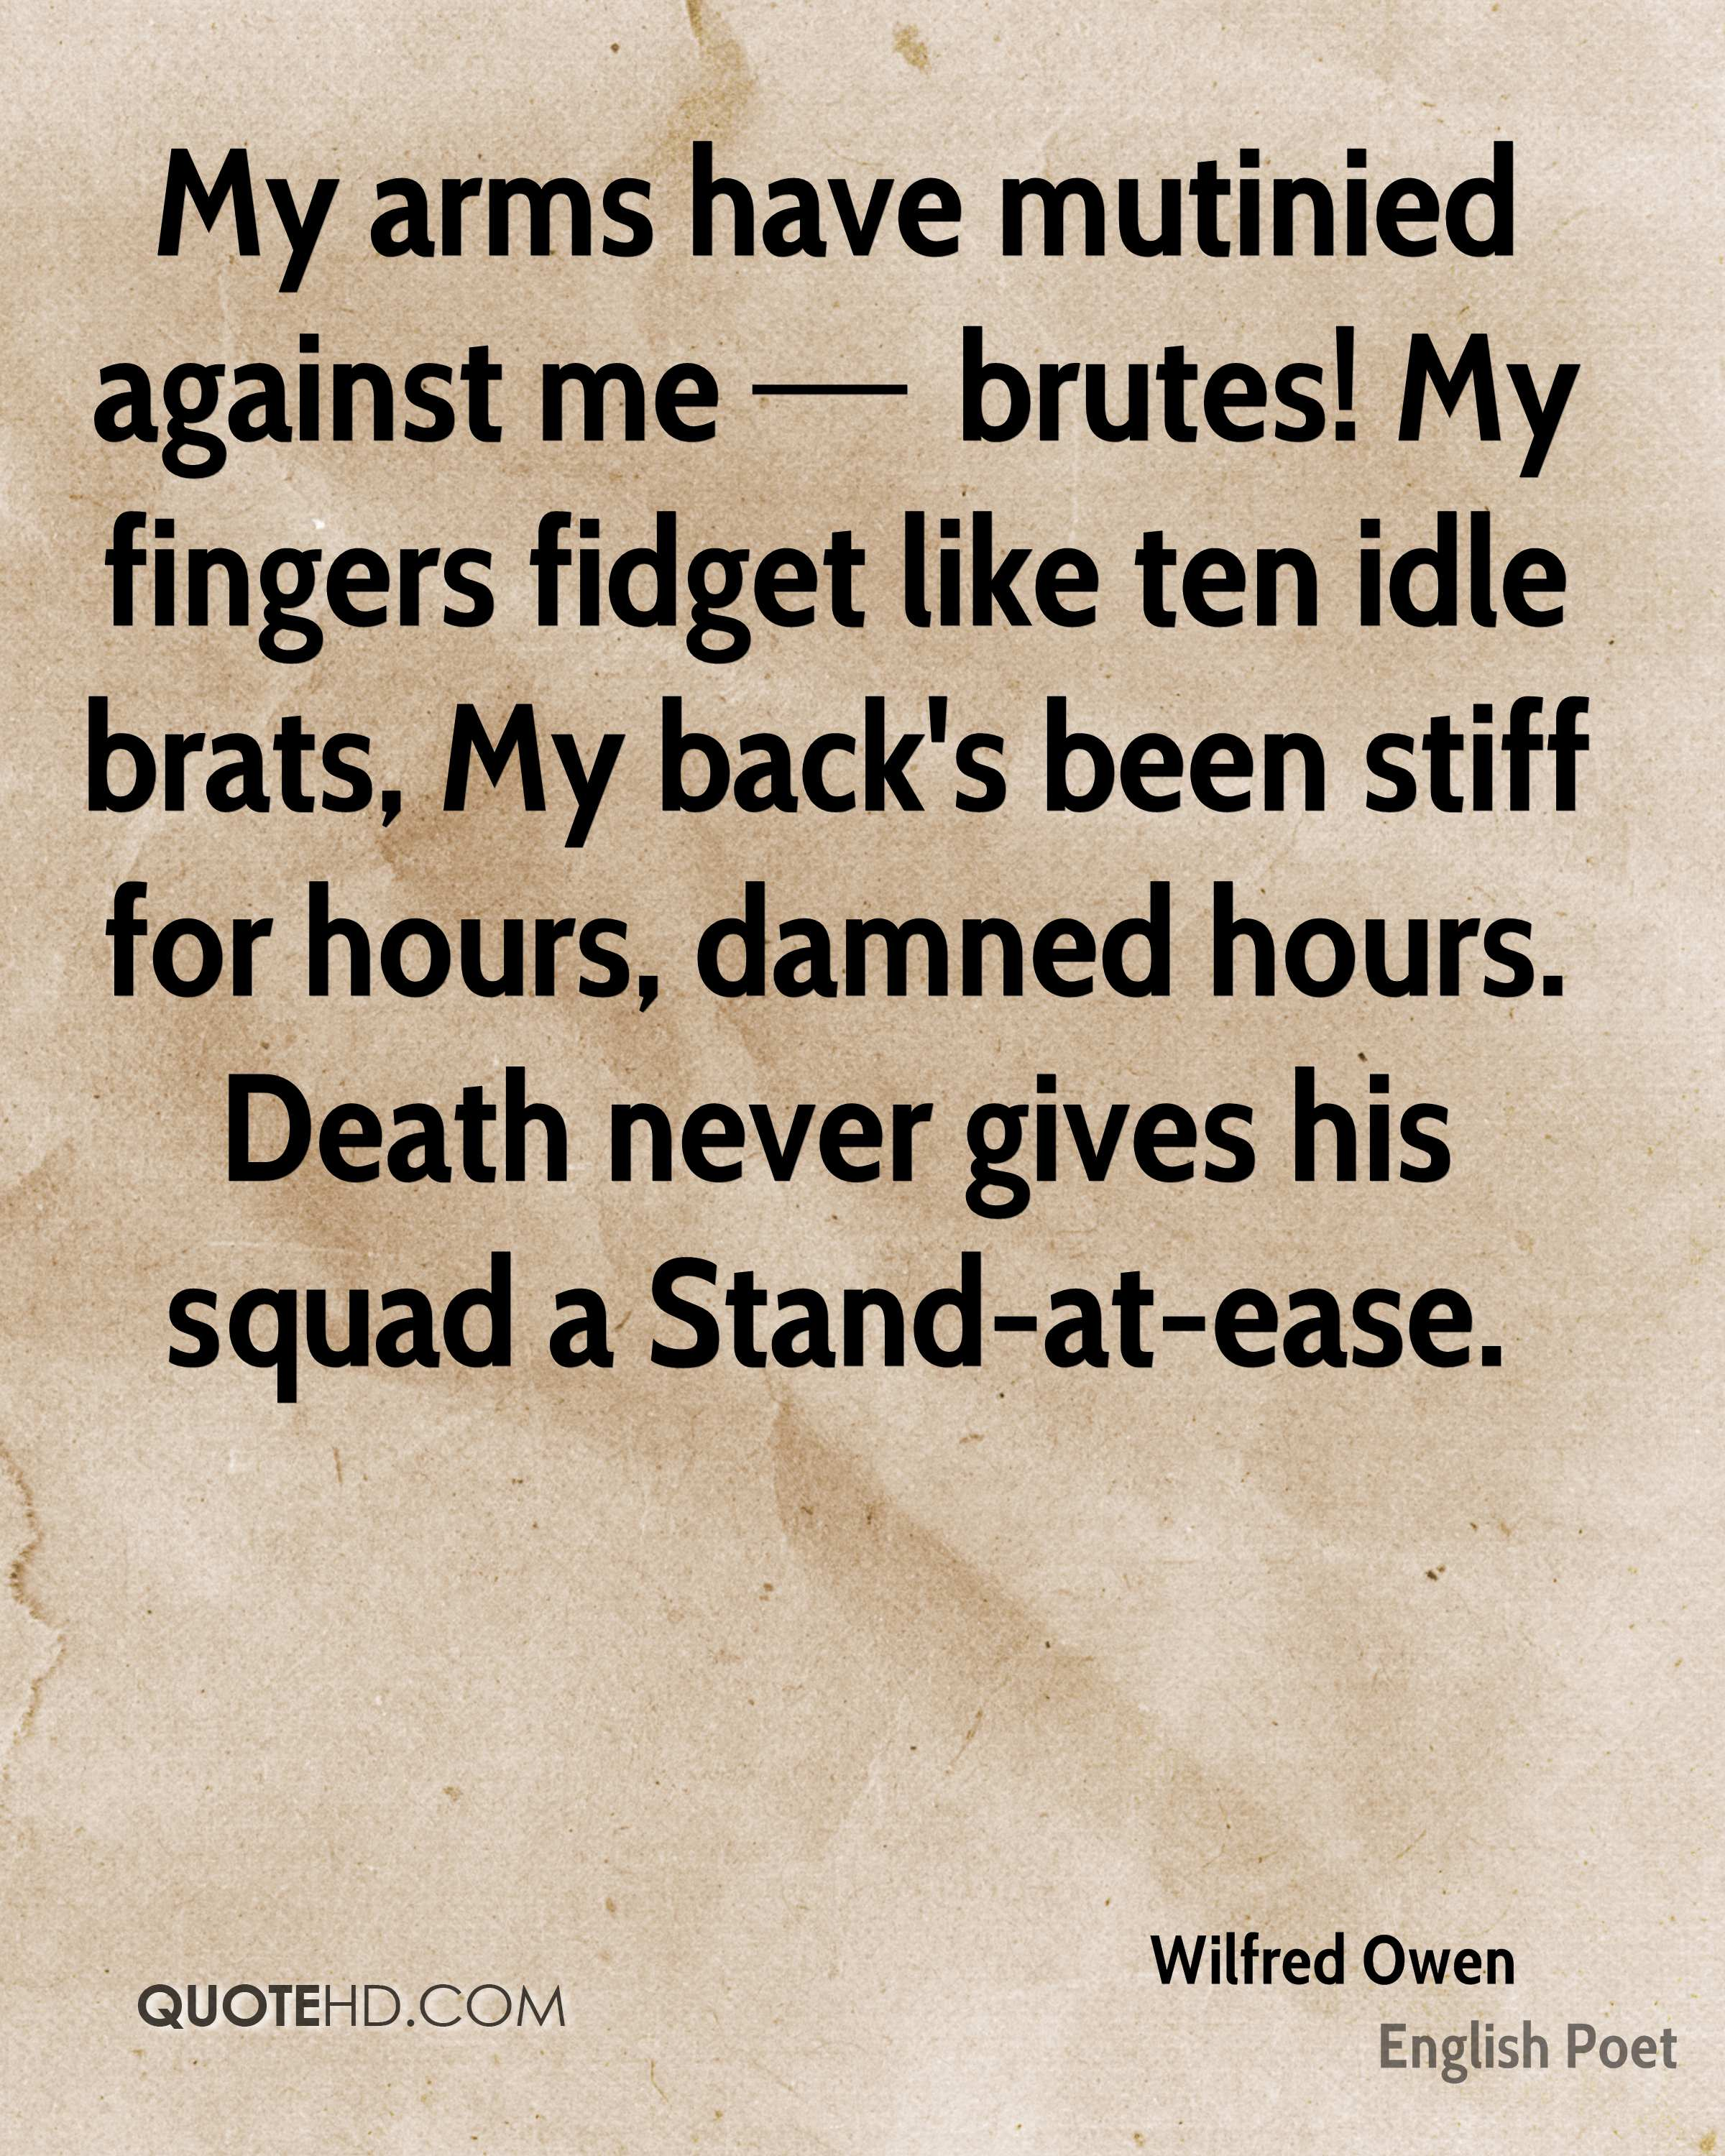 My arms have mutinied against me — brutes! My fingers fidget like ten idle brats, My back's been stiff for hours, damned hours. Death never gives his squad a Stand-at-ease.